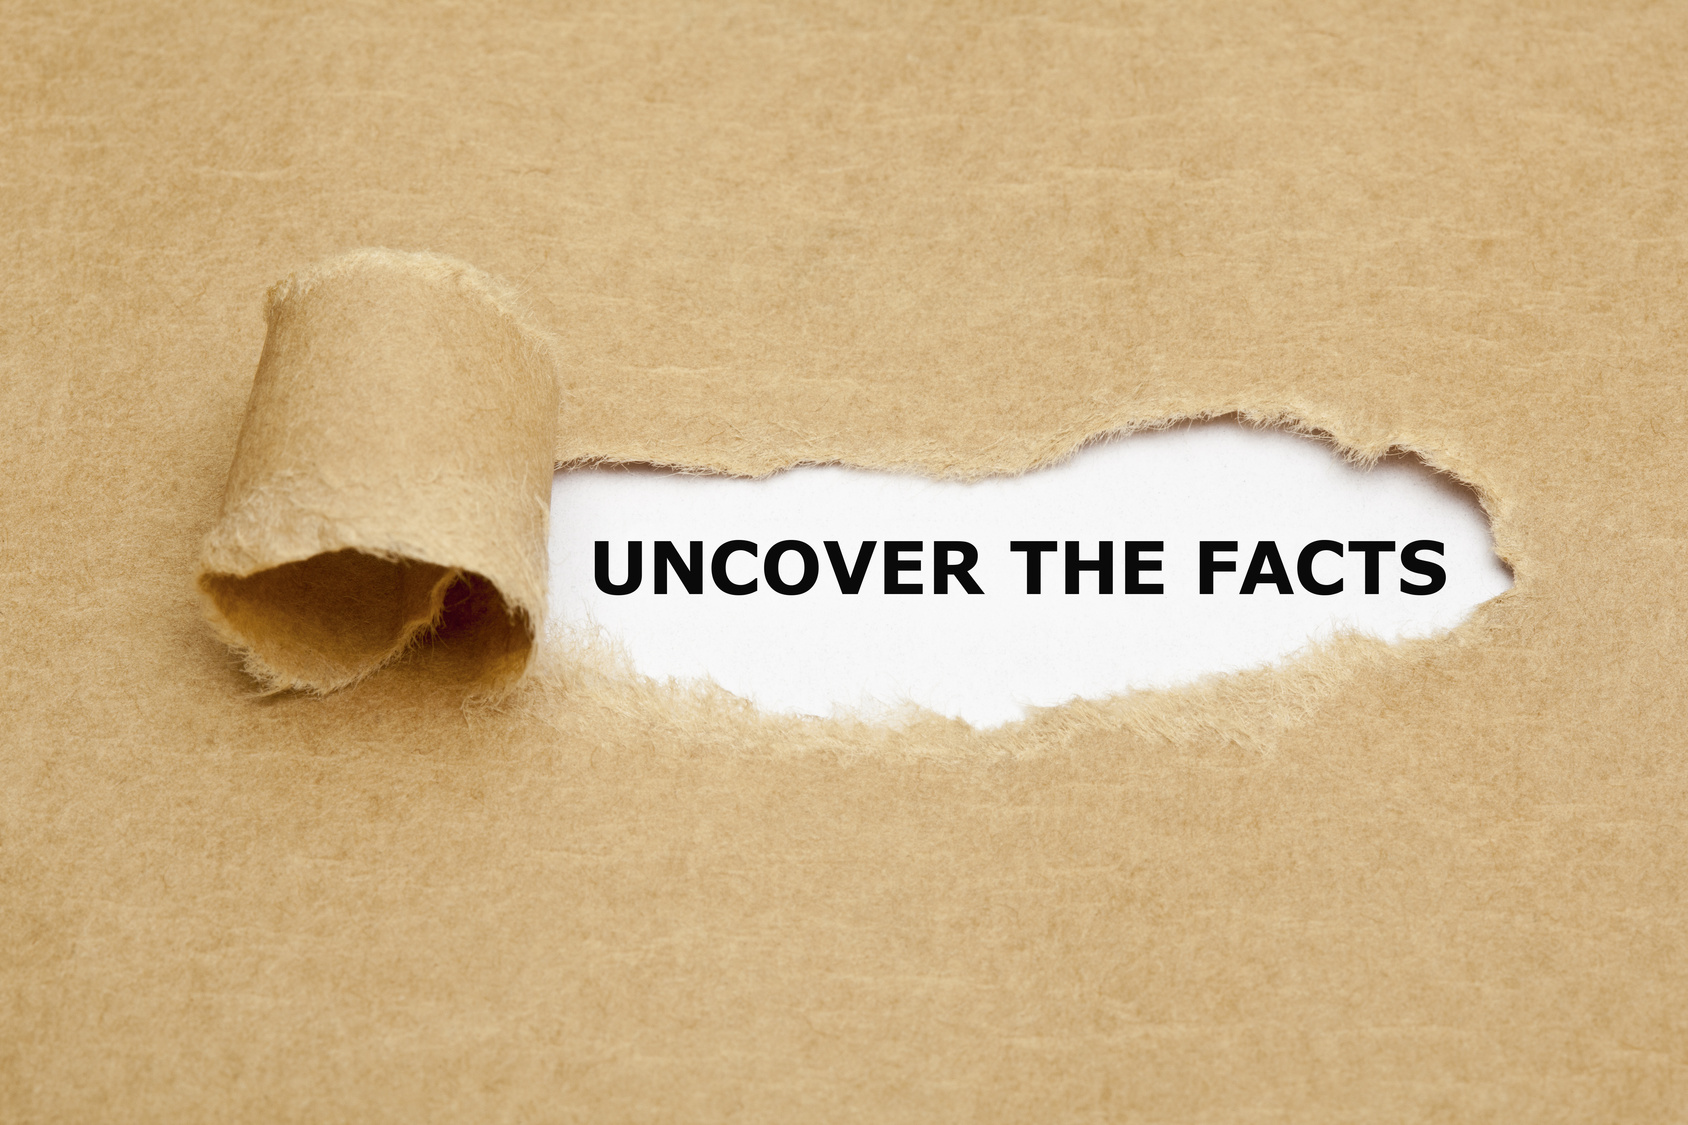 The most common content marketing myths